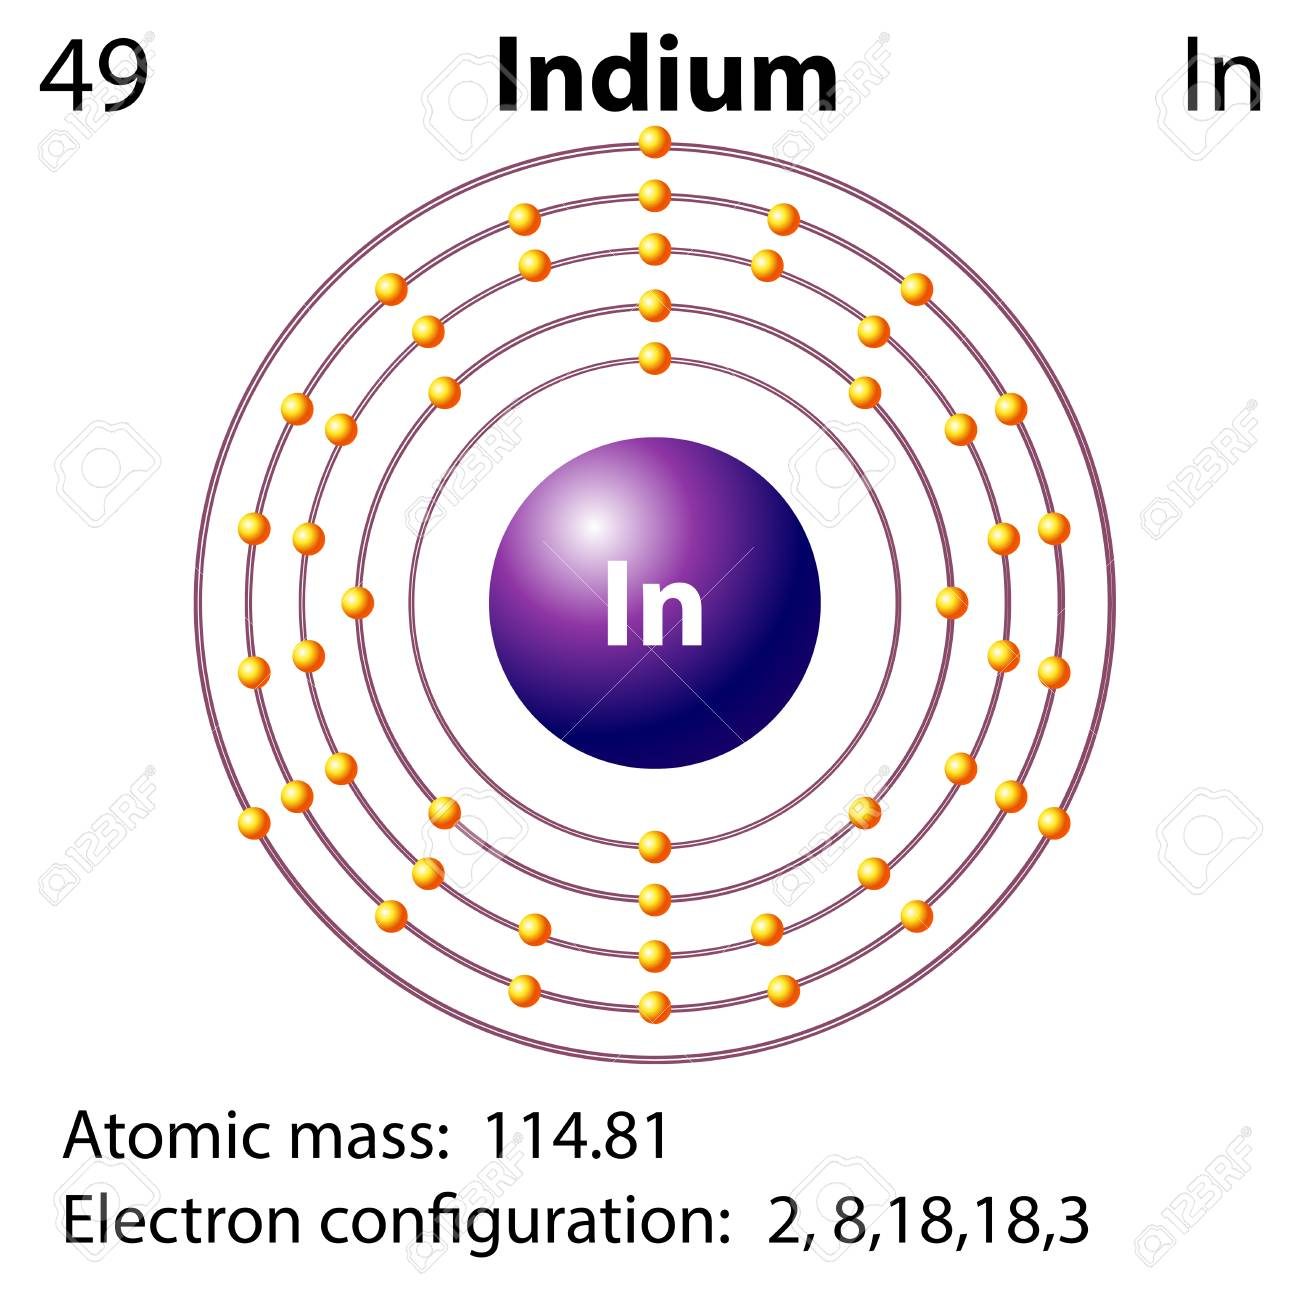 Symbol And Electron Diagram For Idium Illustration Royalty Free